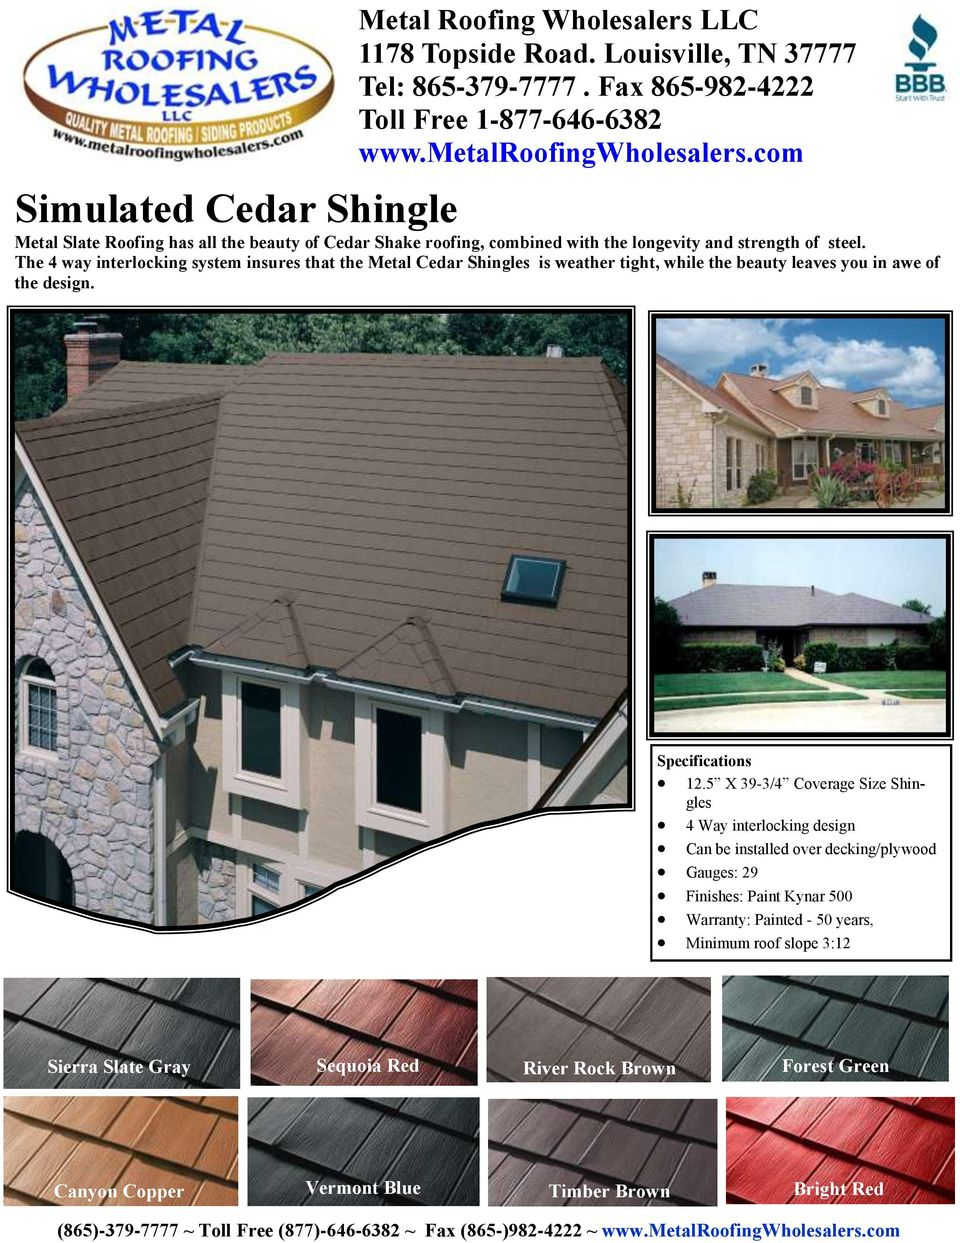 5 X 39-3/4 Coverage Size Shingles 4 Way interlocking design Can be installed over decking/plywood Gauges: 29 Finishes: Paint Kynar 500 Warranty: Painted - 50